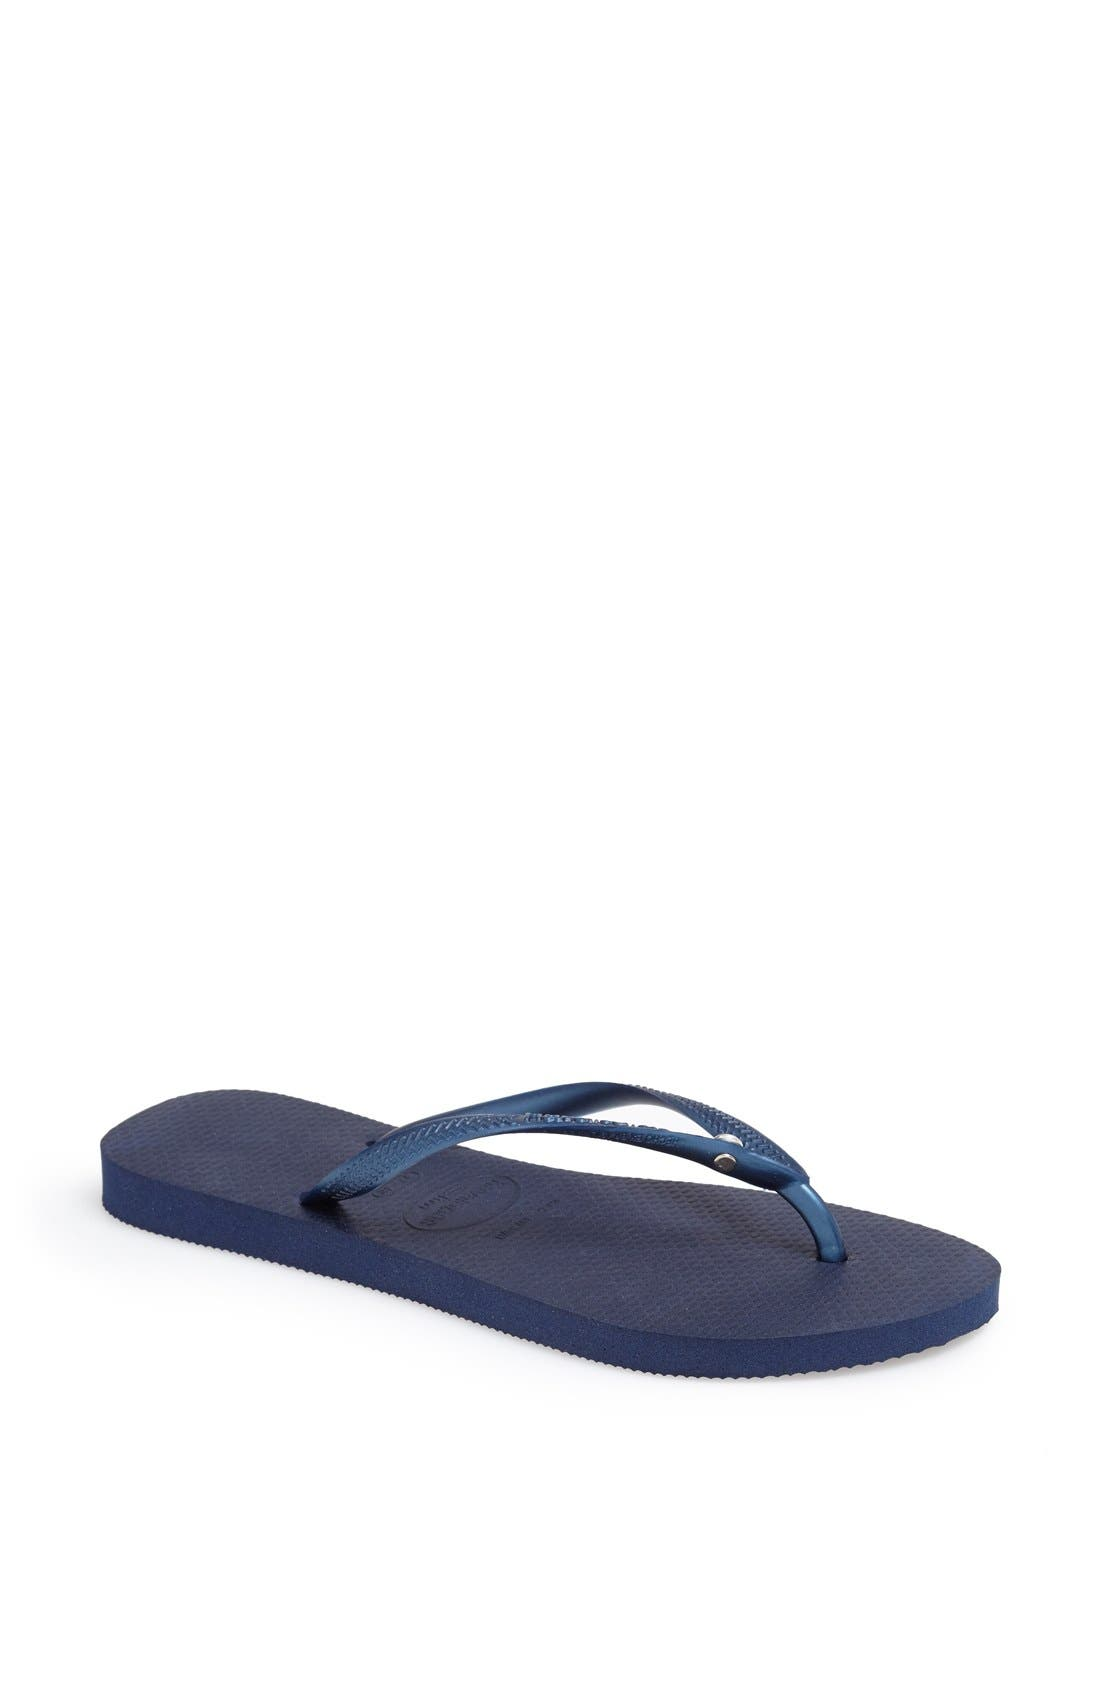 'Slim Crystal Glamour' Flip Flop,                         Main,                         color, Navy Blue